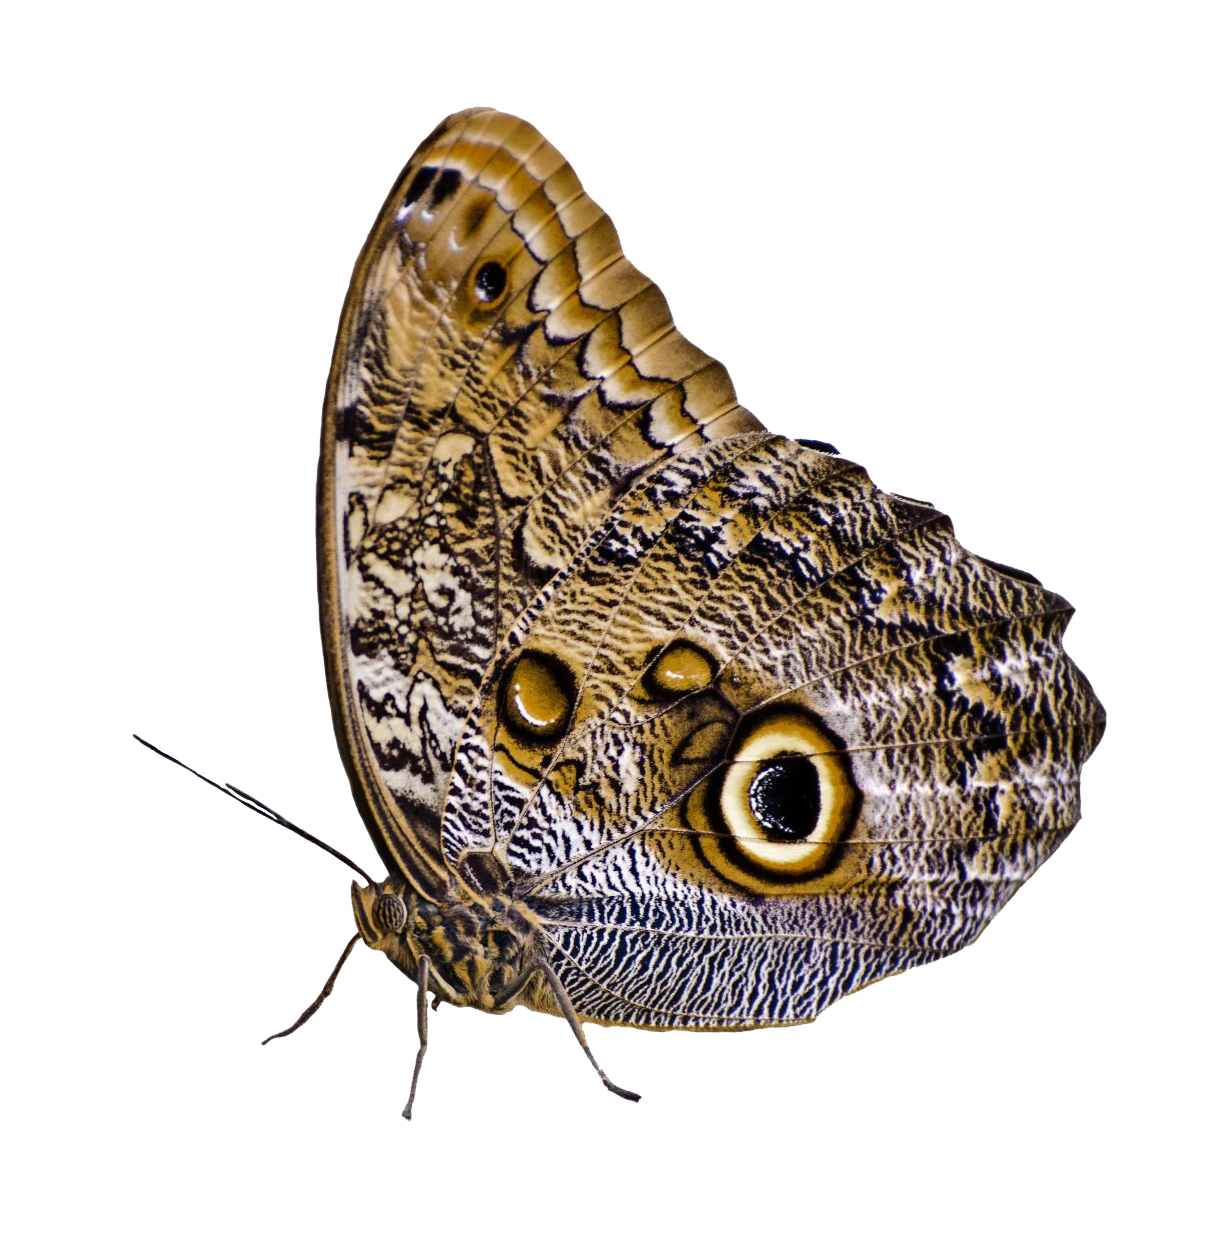 Butterfly PNG Image Butterfly, Png, Png images